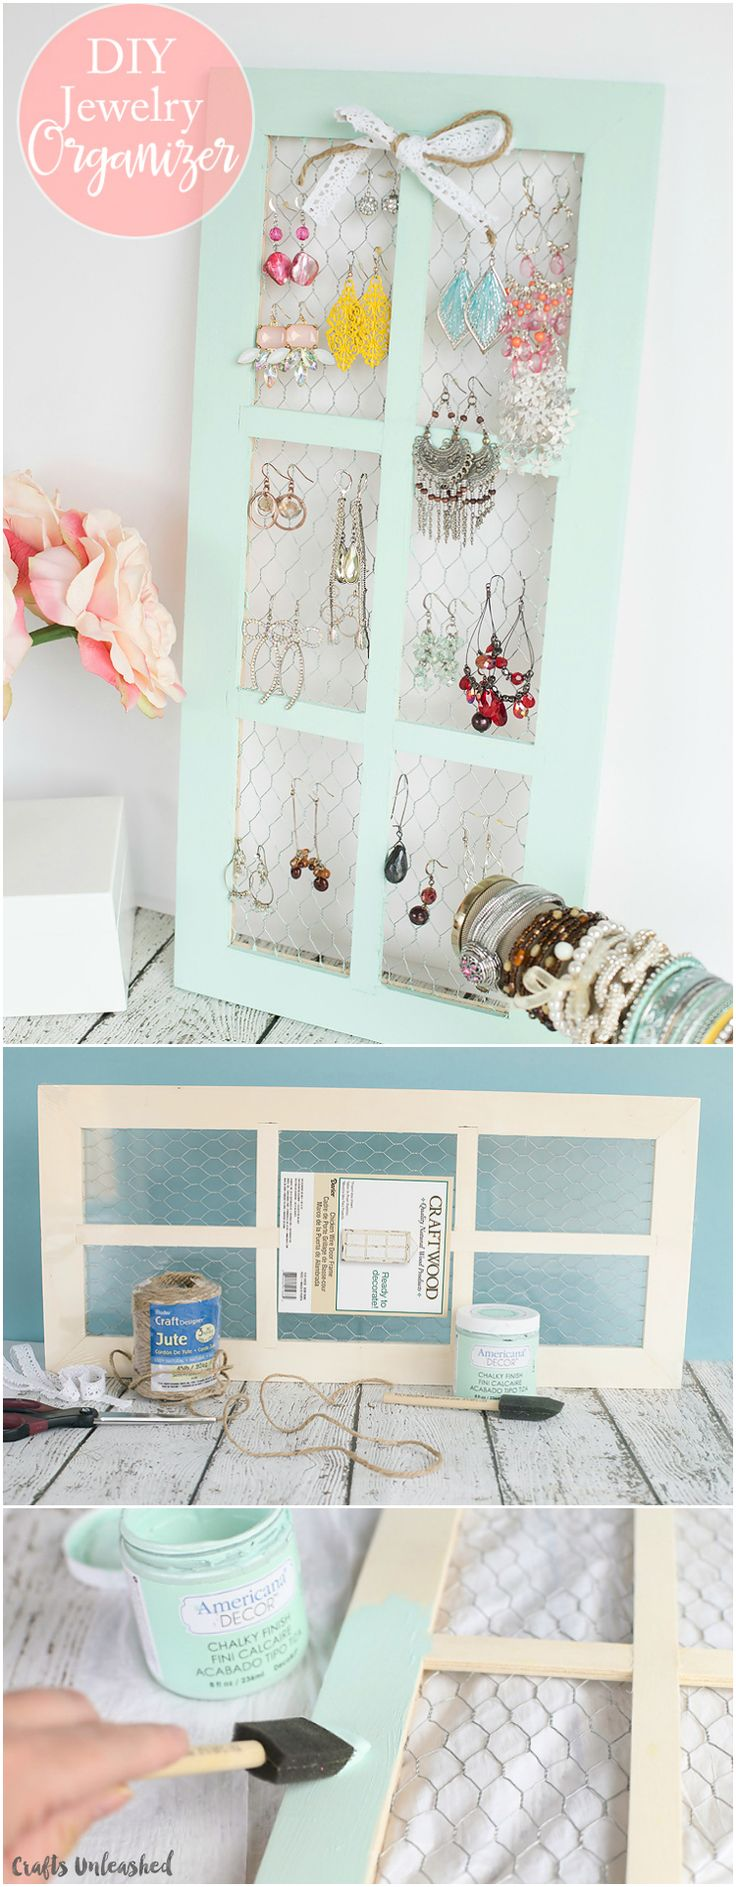 Are you looking for a stylish way to display and organize your jewelry? This chi...